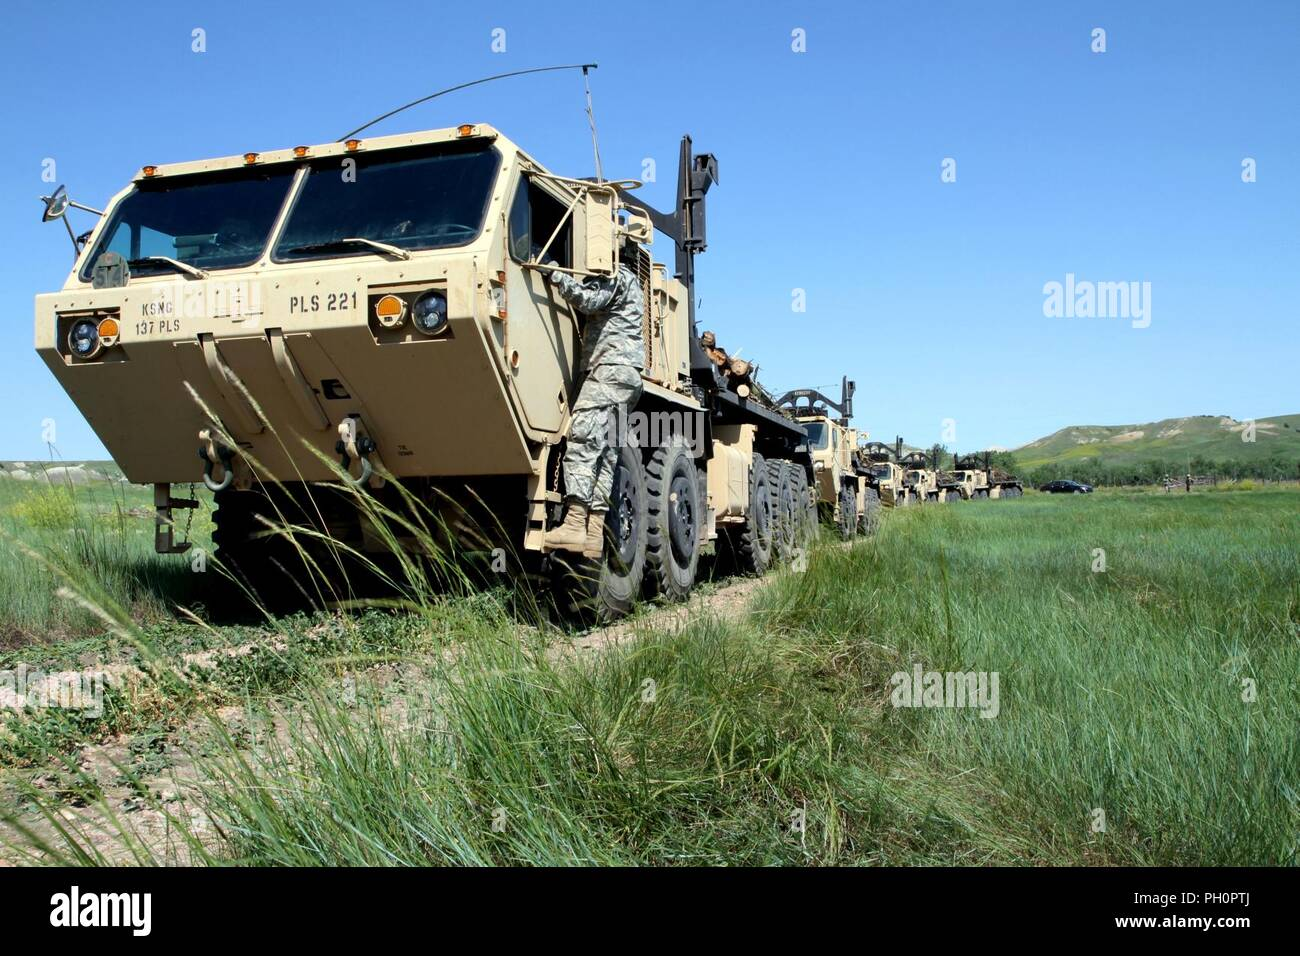 Soldiers from the 137th Transportation Company, Kansas Army National Guard, convoy to Red Shirt, S.D., June 15, 2018. These military vehicles allow large amounts of timber to be delivered to Native American reservations in support of the timber haul operation and Golden Coyote training exercise. Stock Photo